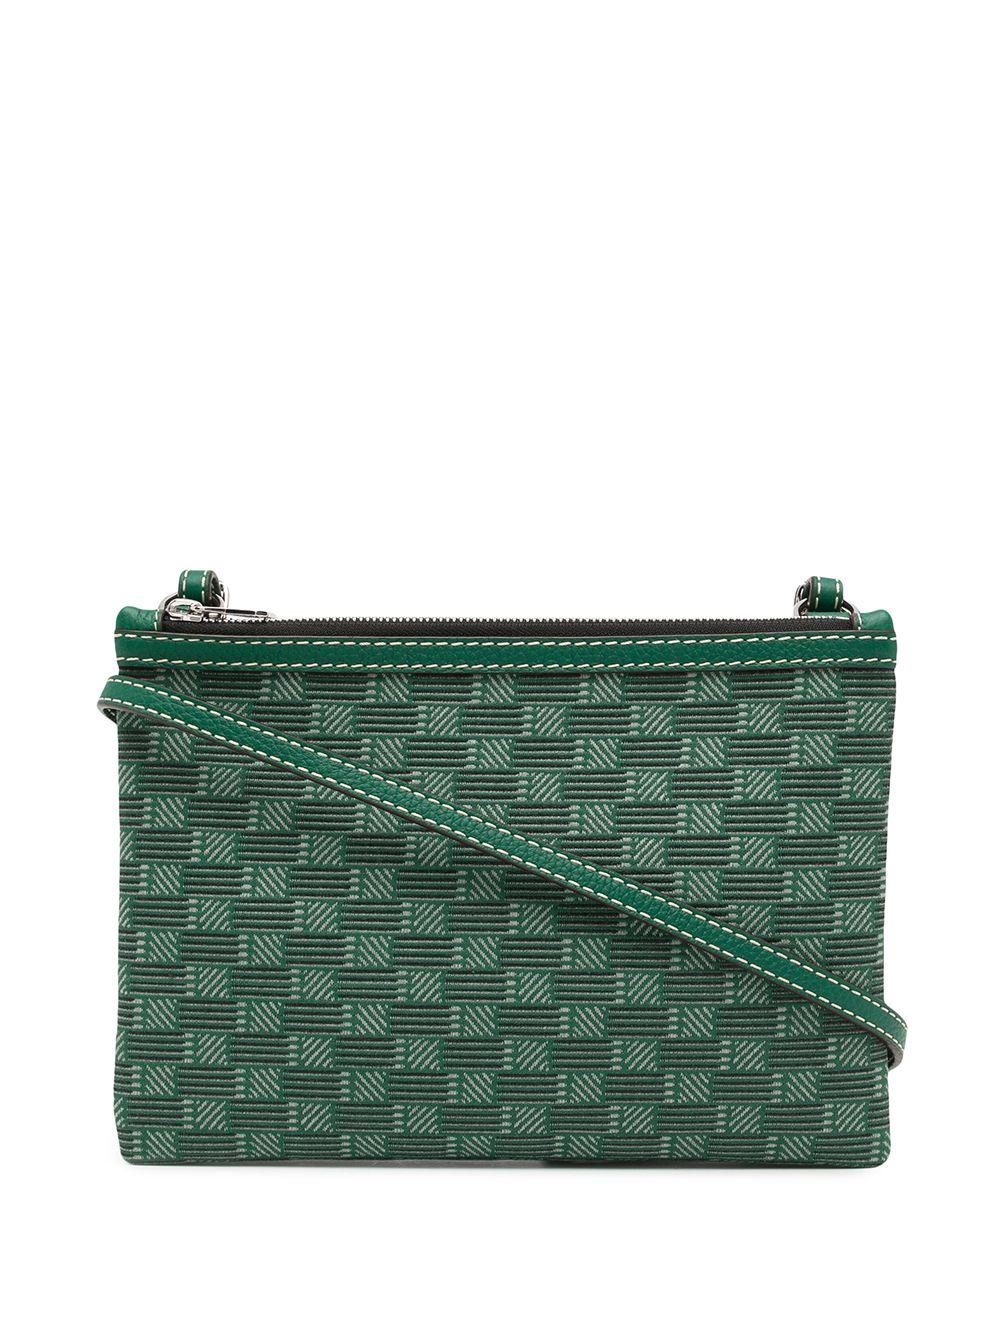 Celestin Coated Jacquard Crossbody